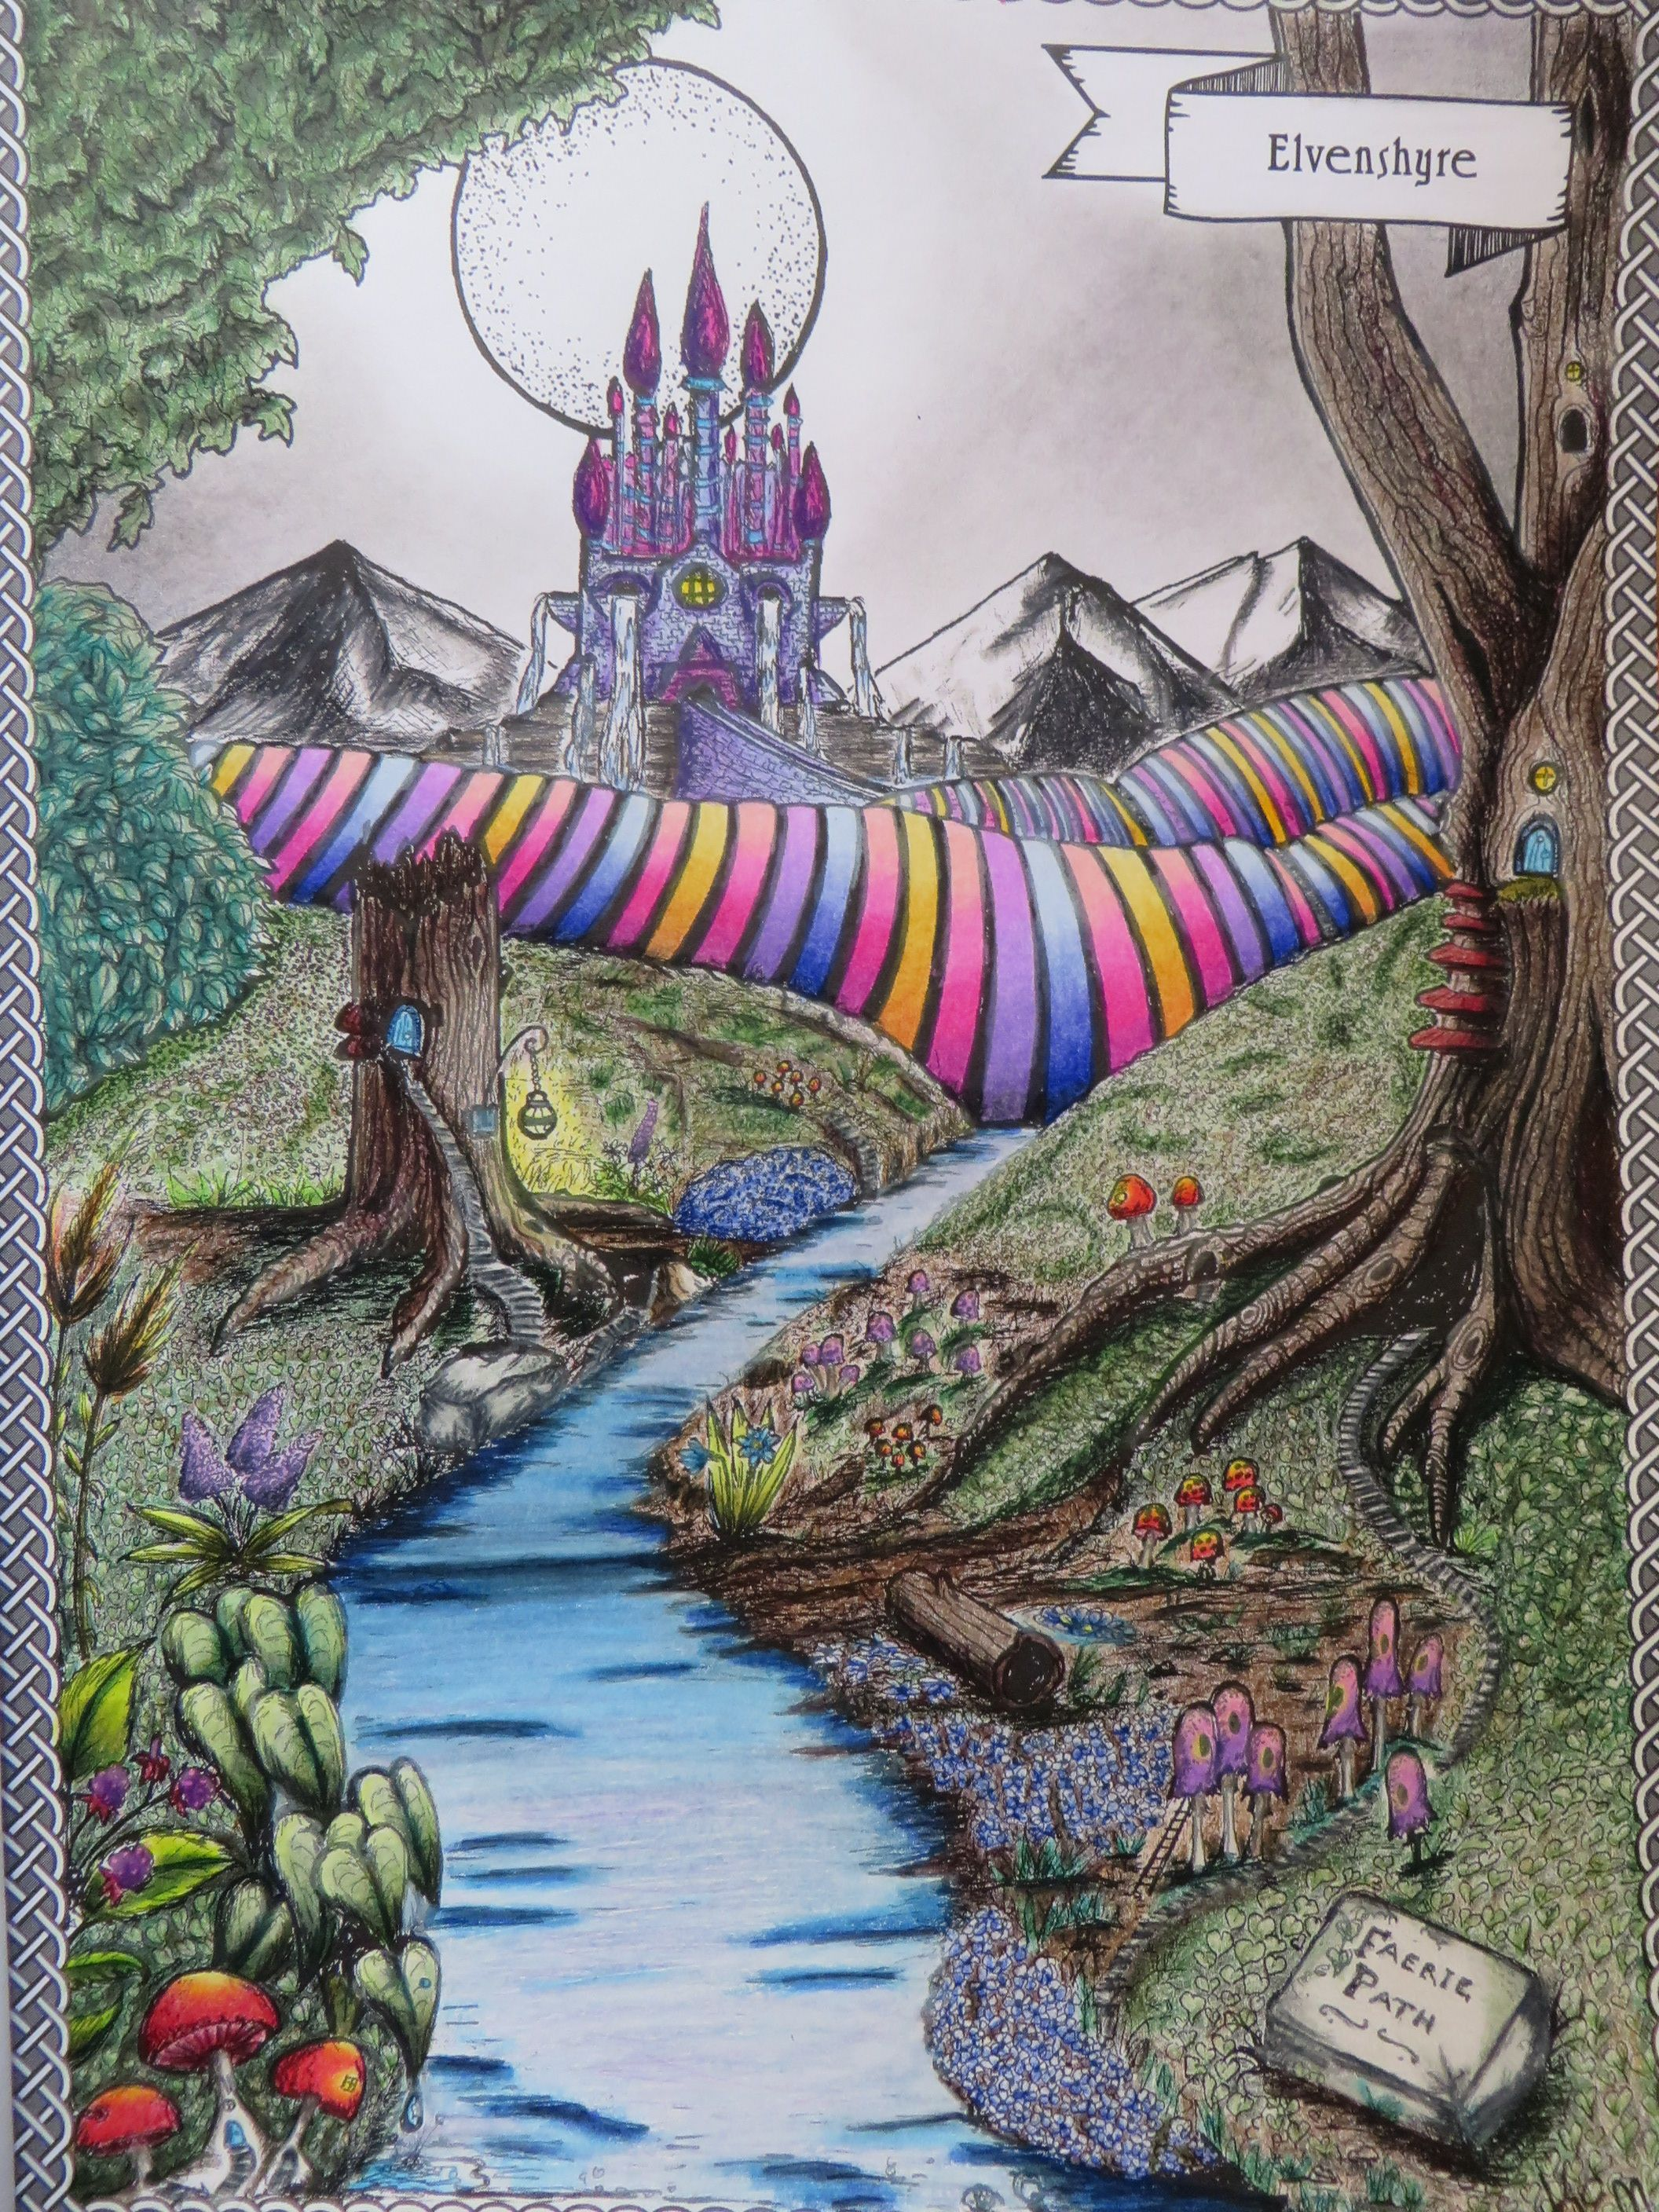 4.- Elvenshyre. They left the village to head for the castle... and found this lovely view on their way :) #LandsofUchanda #Uchana #Coloring #ColoringBook #Prismacolor